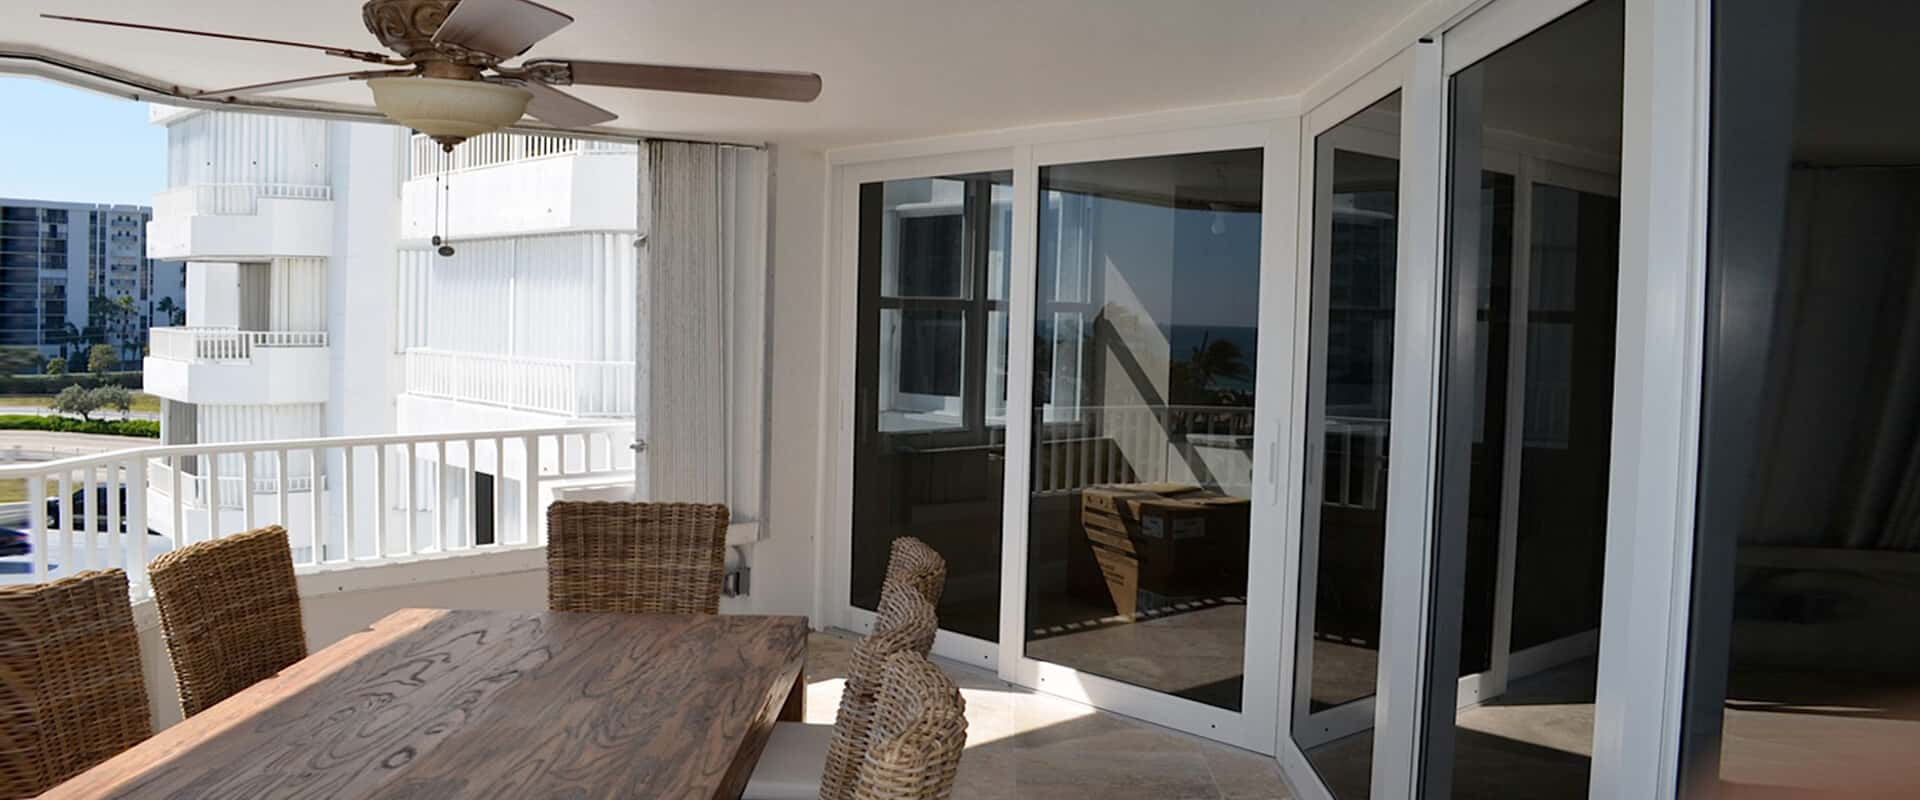 High end impact windows doors pompano beach fl for High end doors